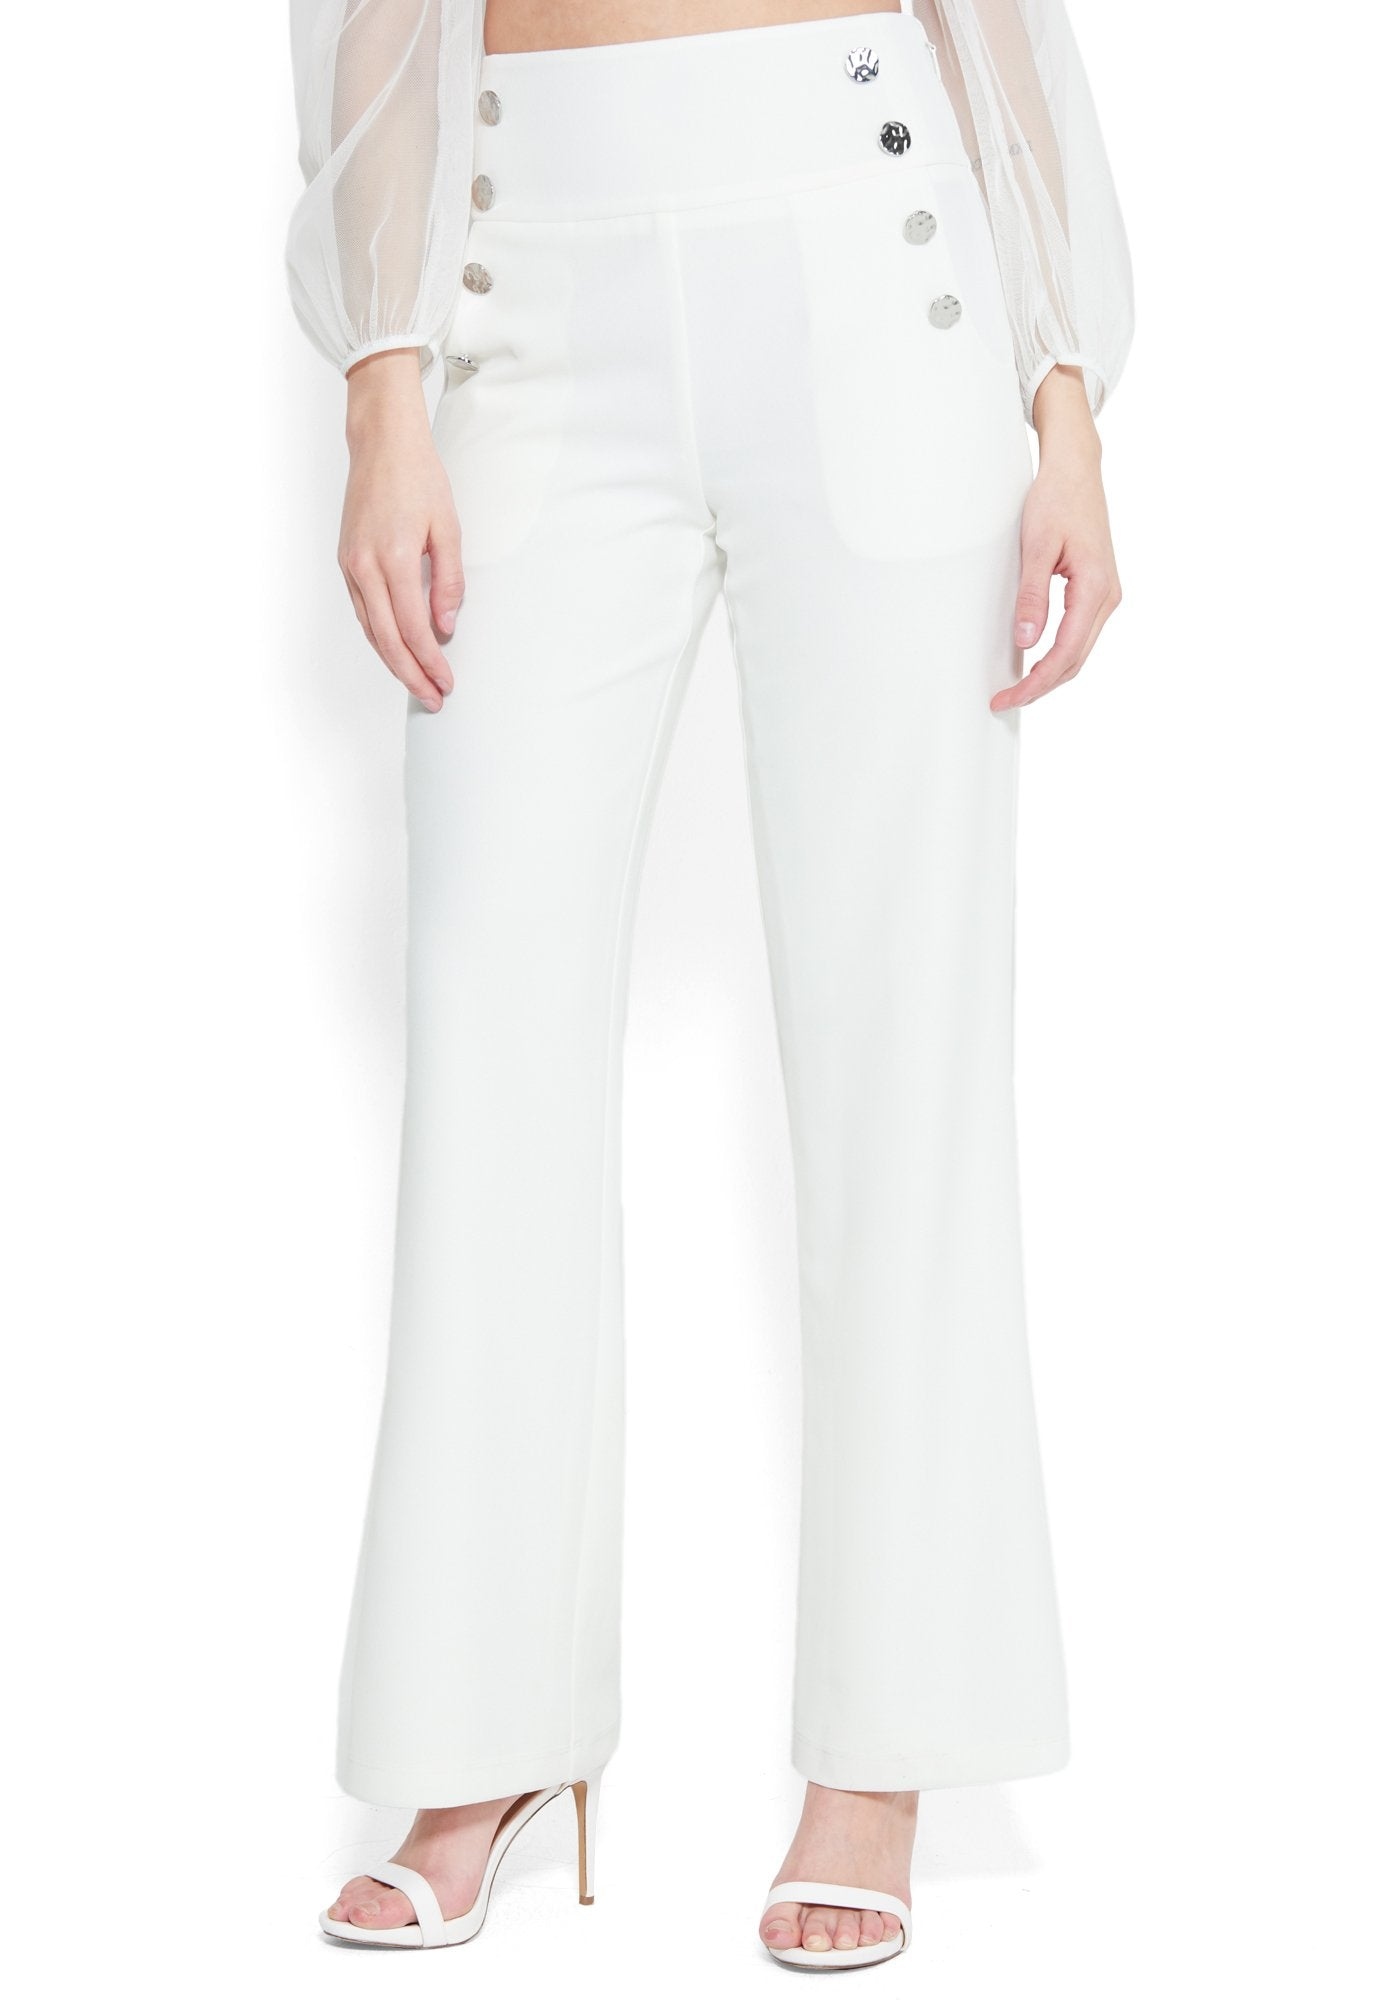 Bebe Women's High Waist Wide Leg Button Pant, Size 00 in PRISTINE Polyester